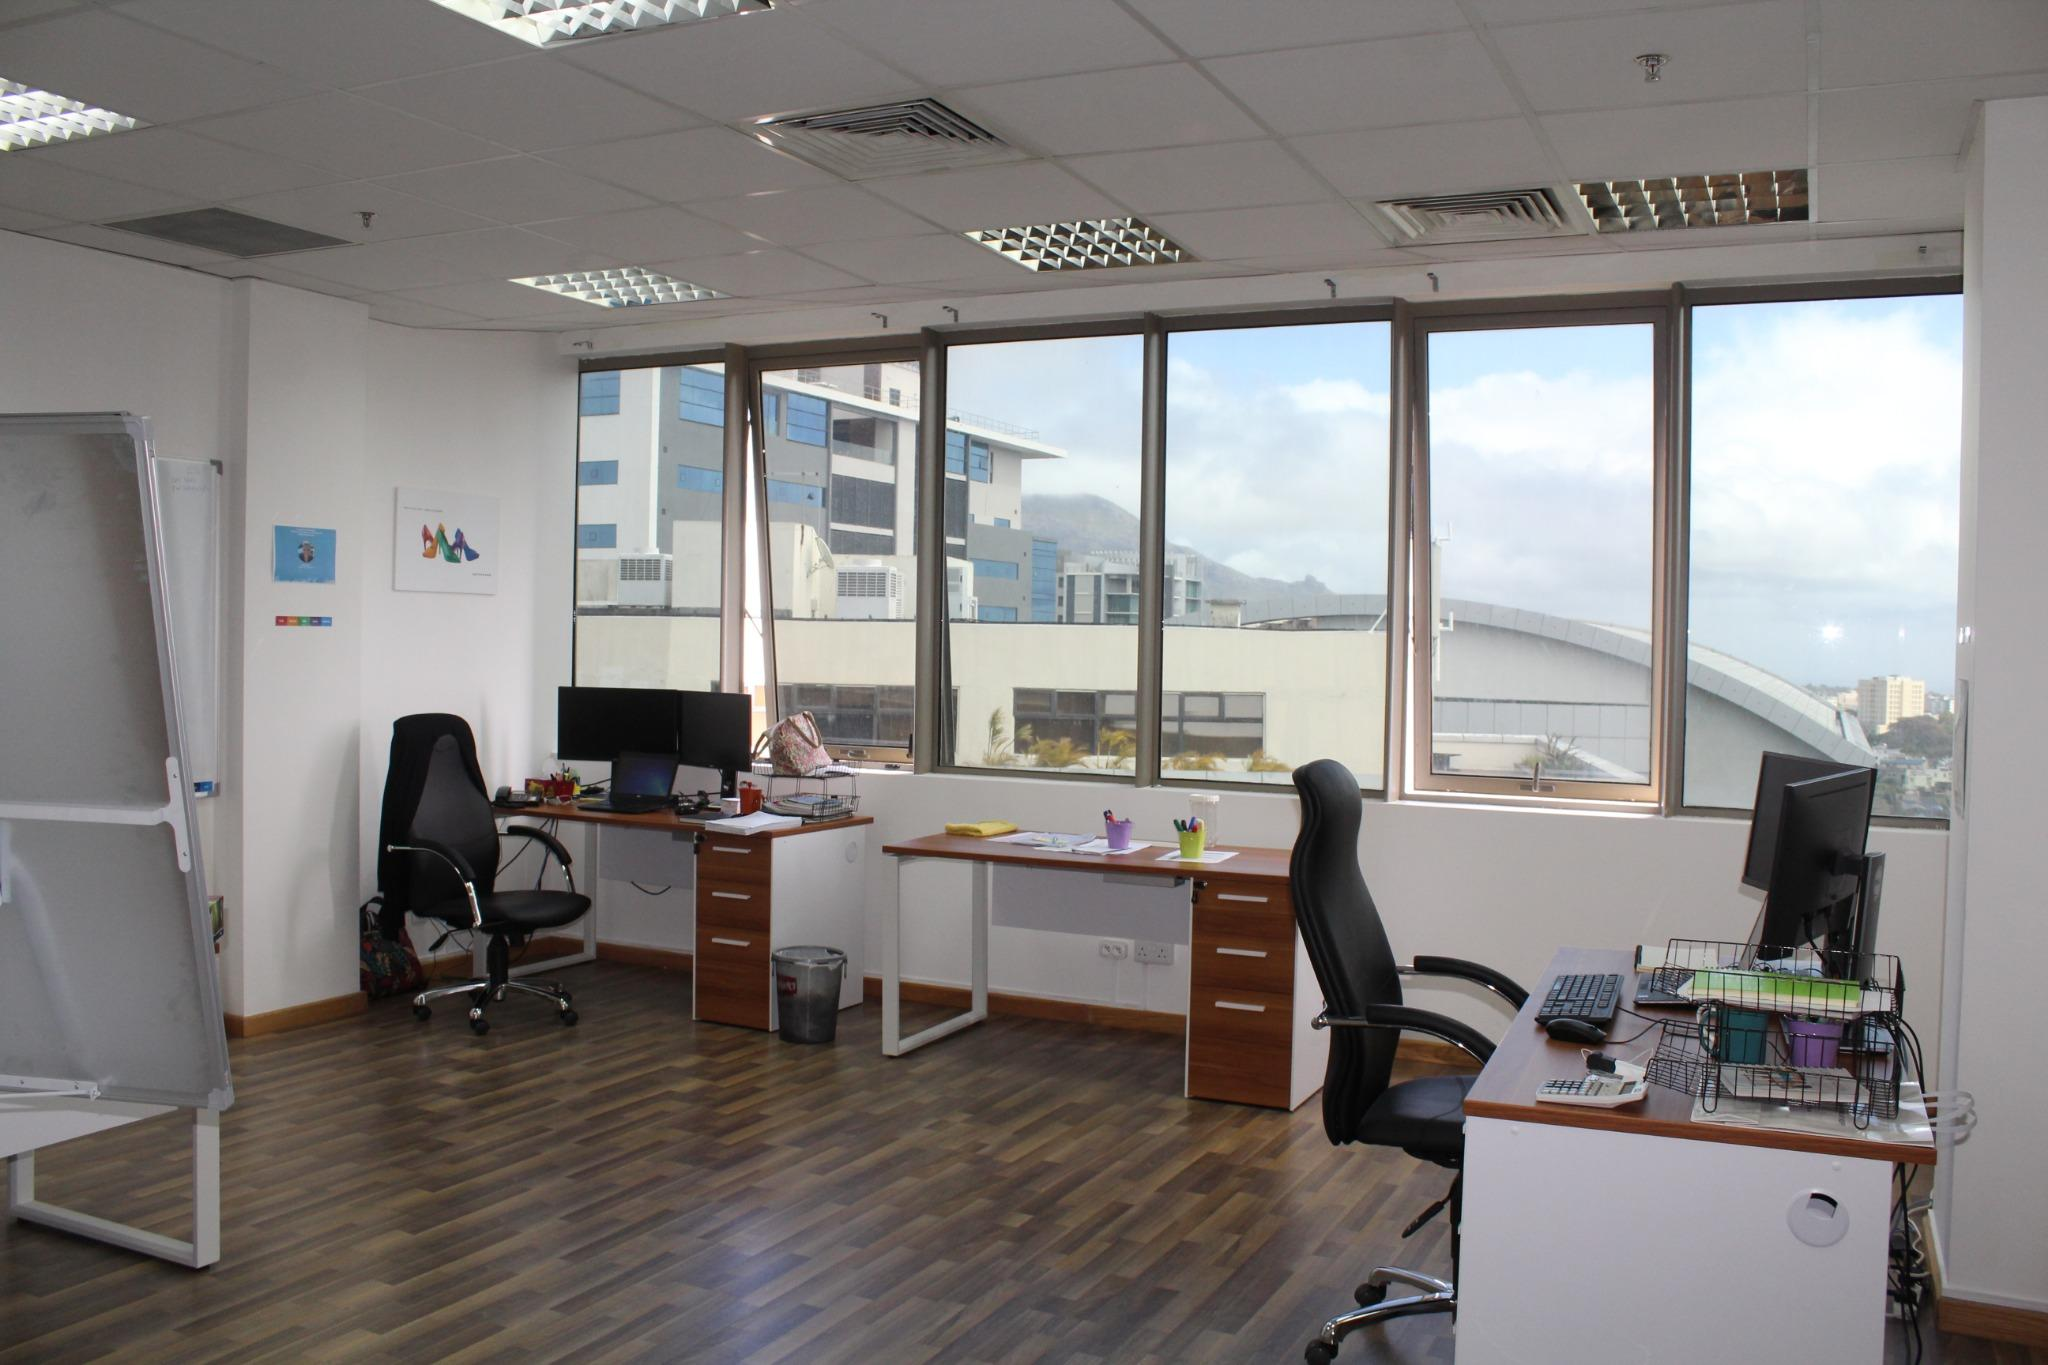 To rent – Furnished office space of 58 M2 situated on 11th Floor in Ebène.